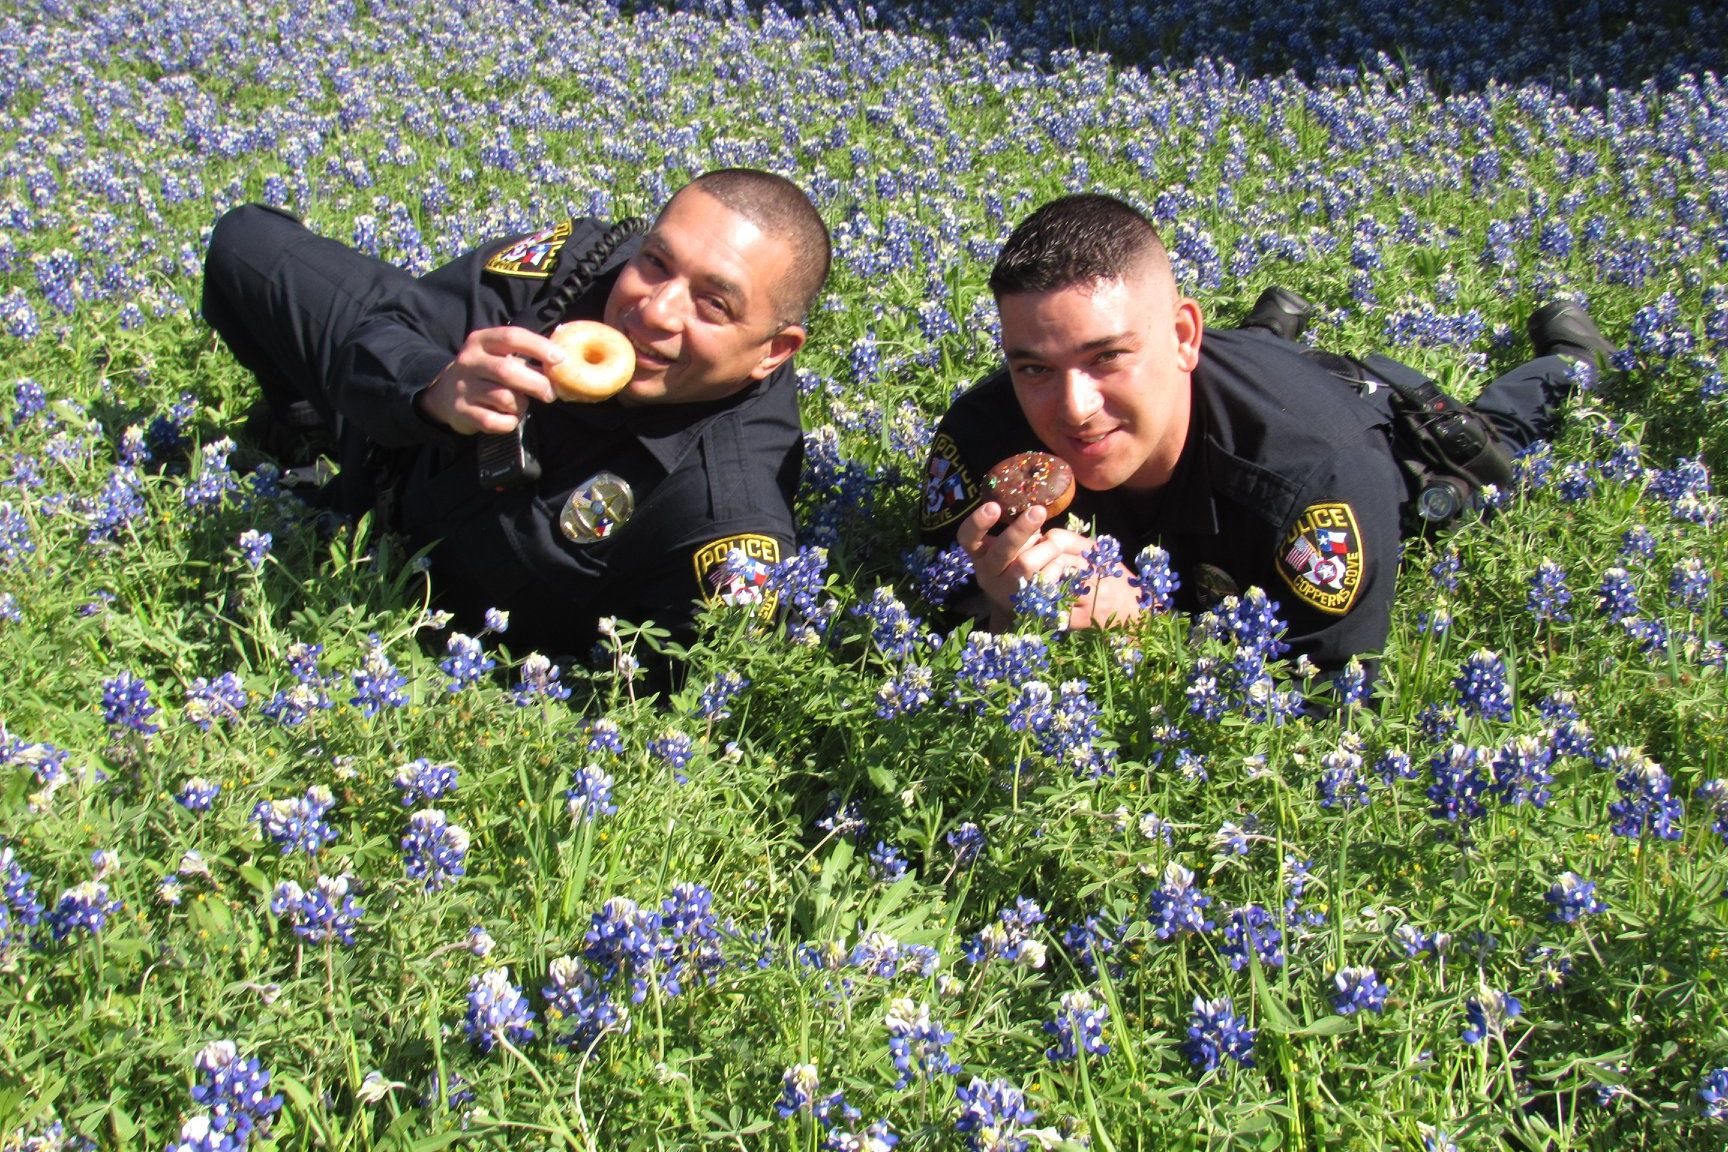 WATCH: Texas Police Officers Pose for Hilarious Bluebonnet Social Media Challenge